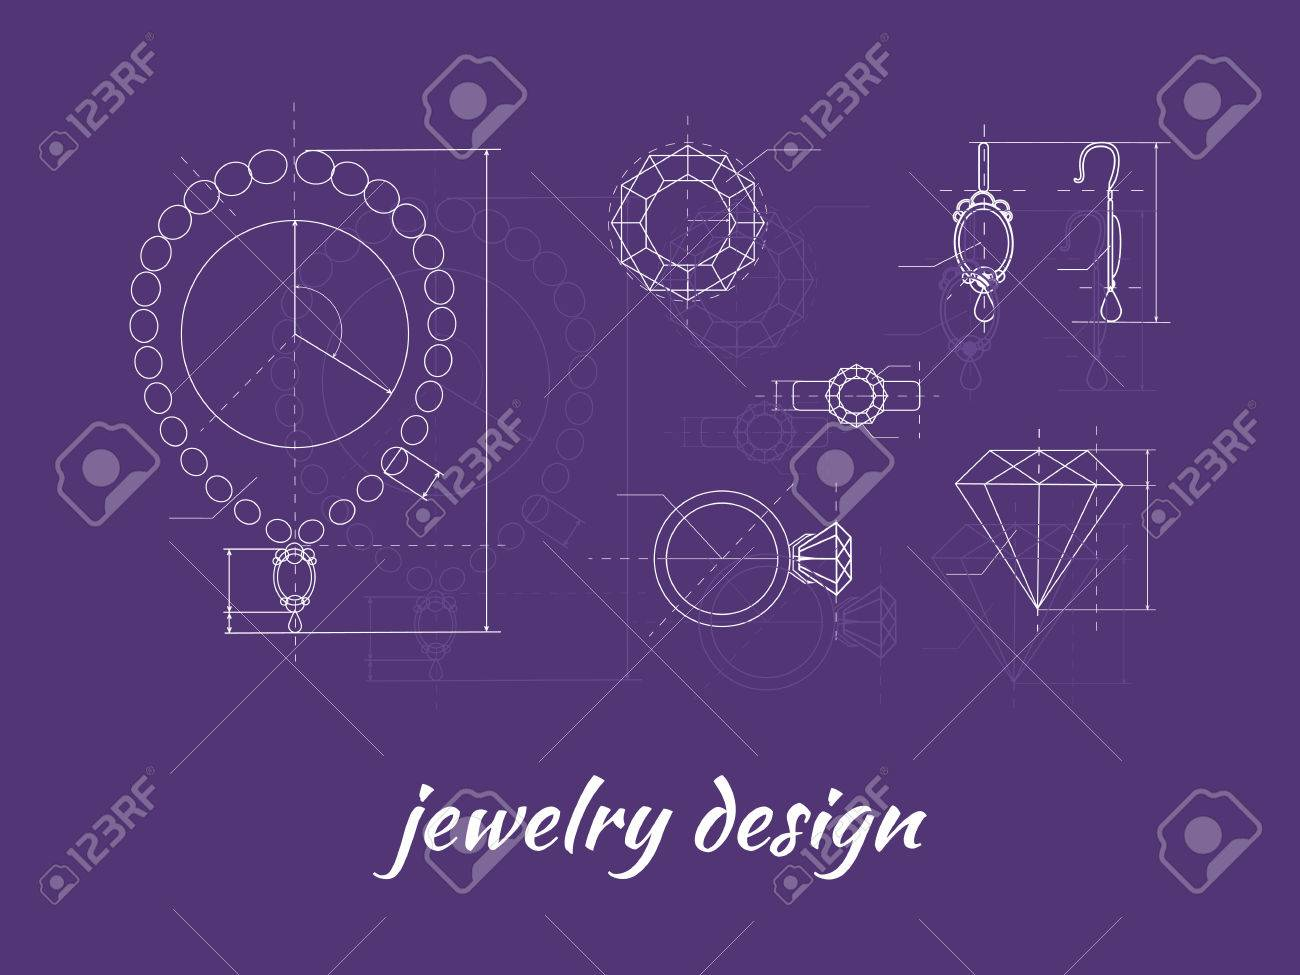 Jewelry design banner ring earring and necklace graphic scheme jewelry design banner ring earring and necklace graphic scheme diamond shape blueprint malvernweather Choice Image